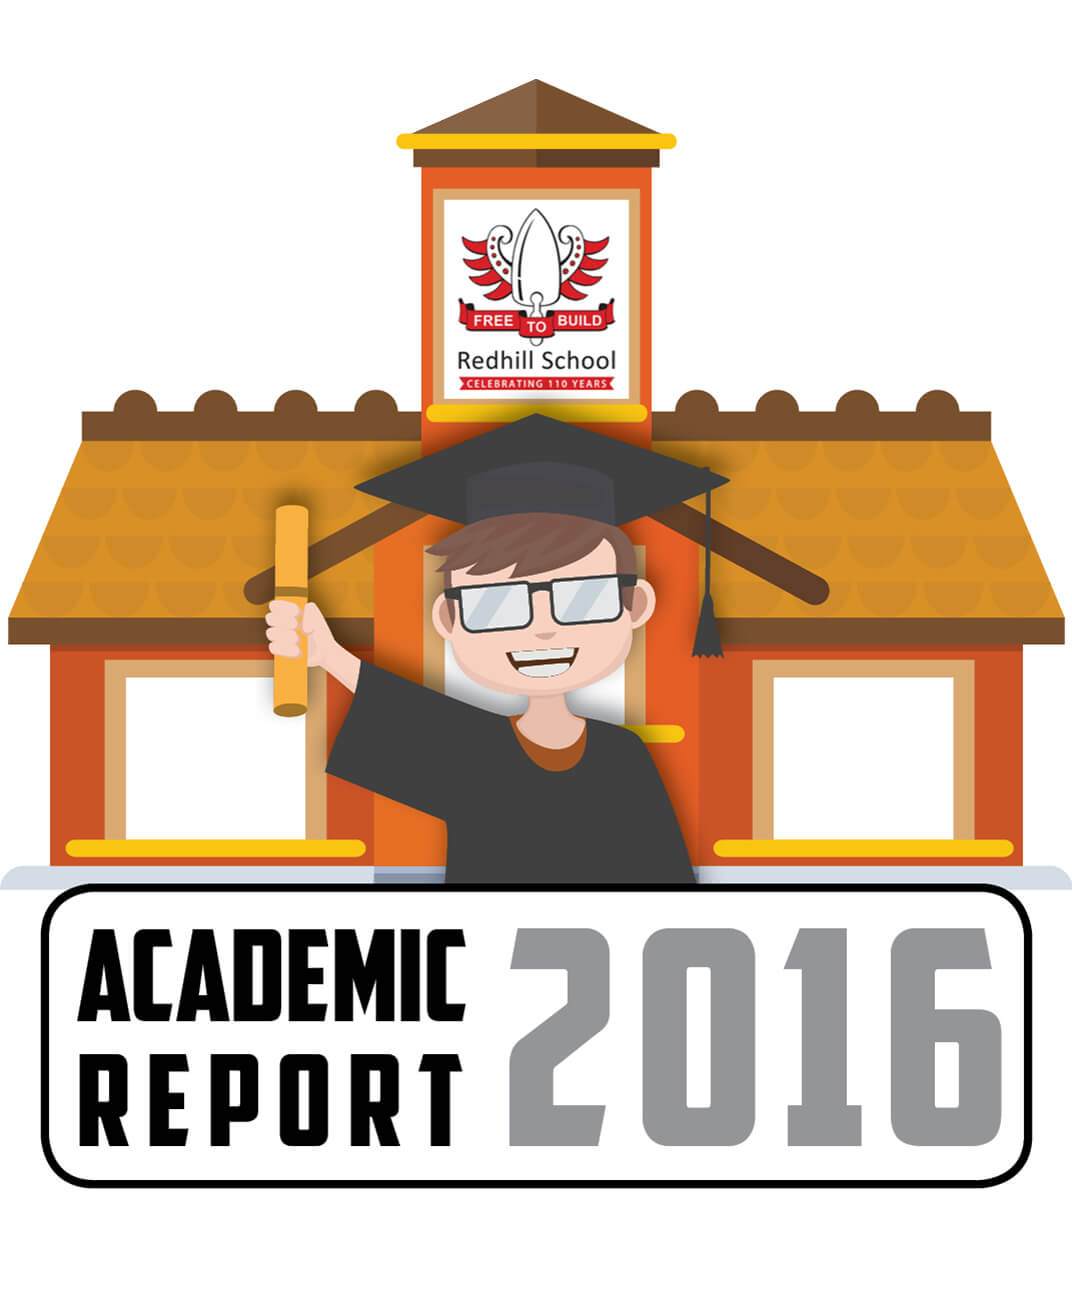 Academic Benchmark Study - 2016 Report